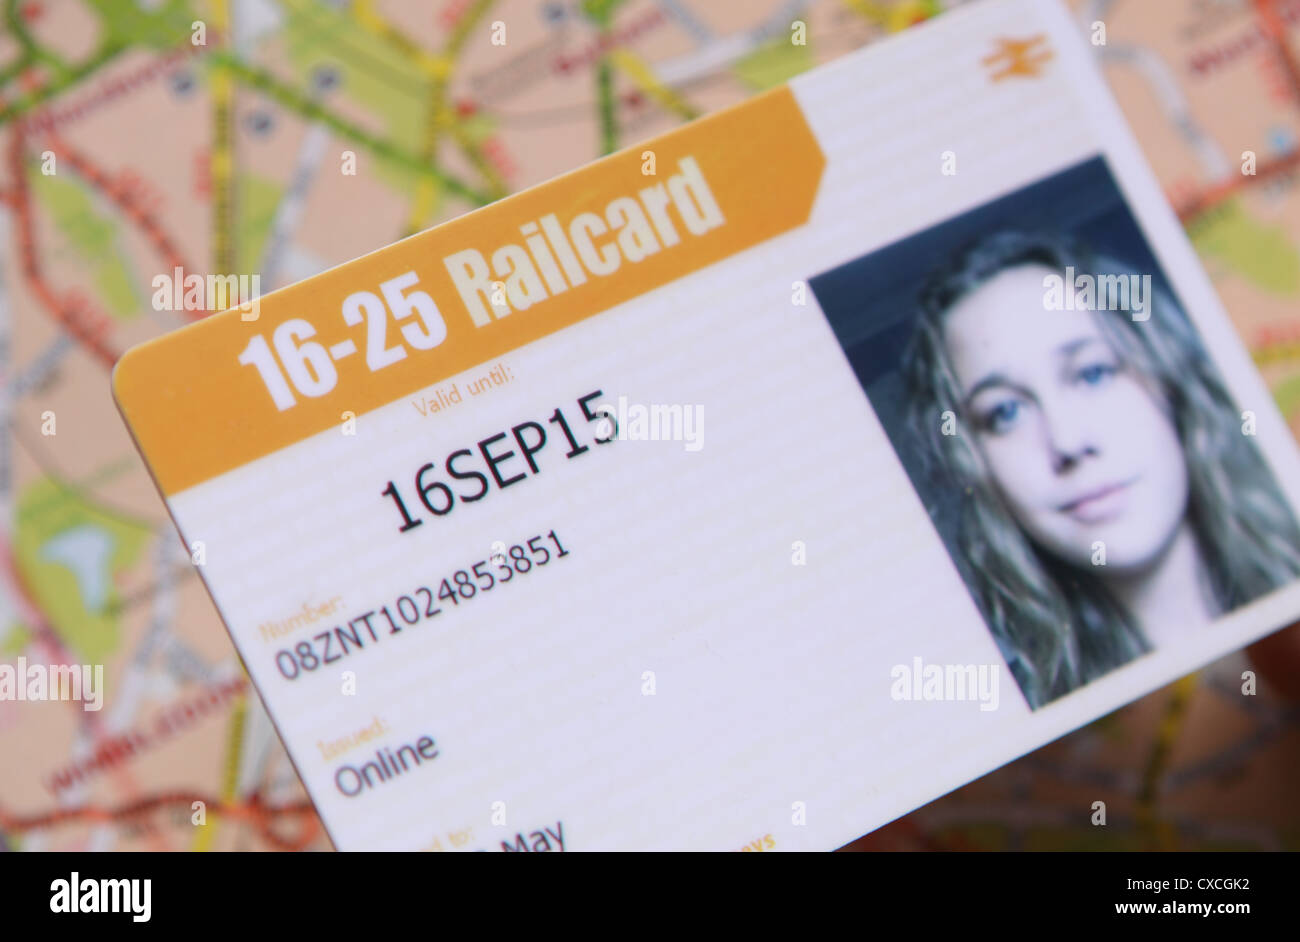 Student Railcard 16 - 25 year old UK national rail train discount scheme - Stock Image